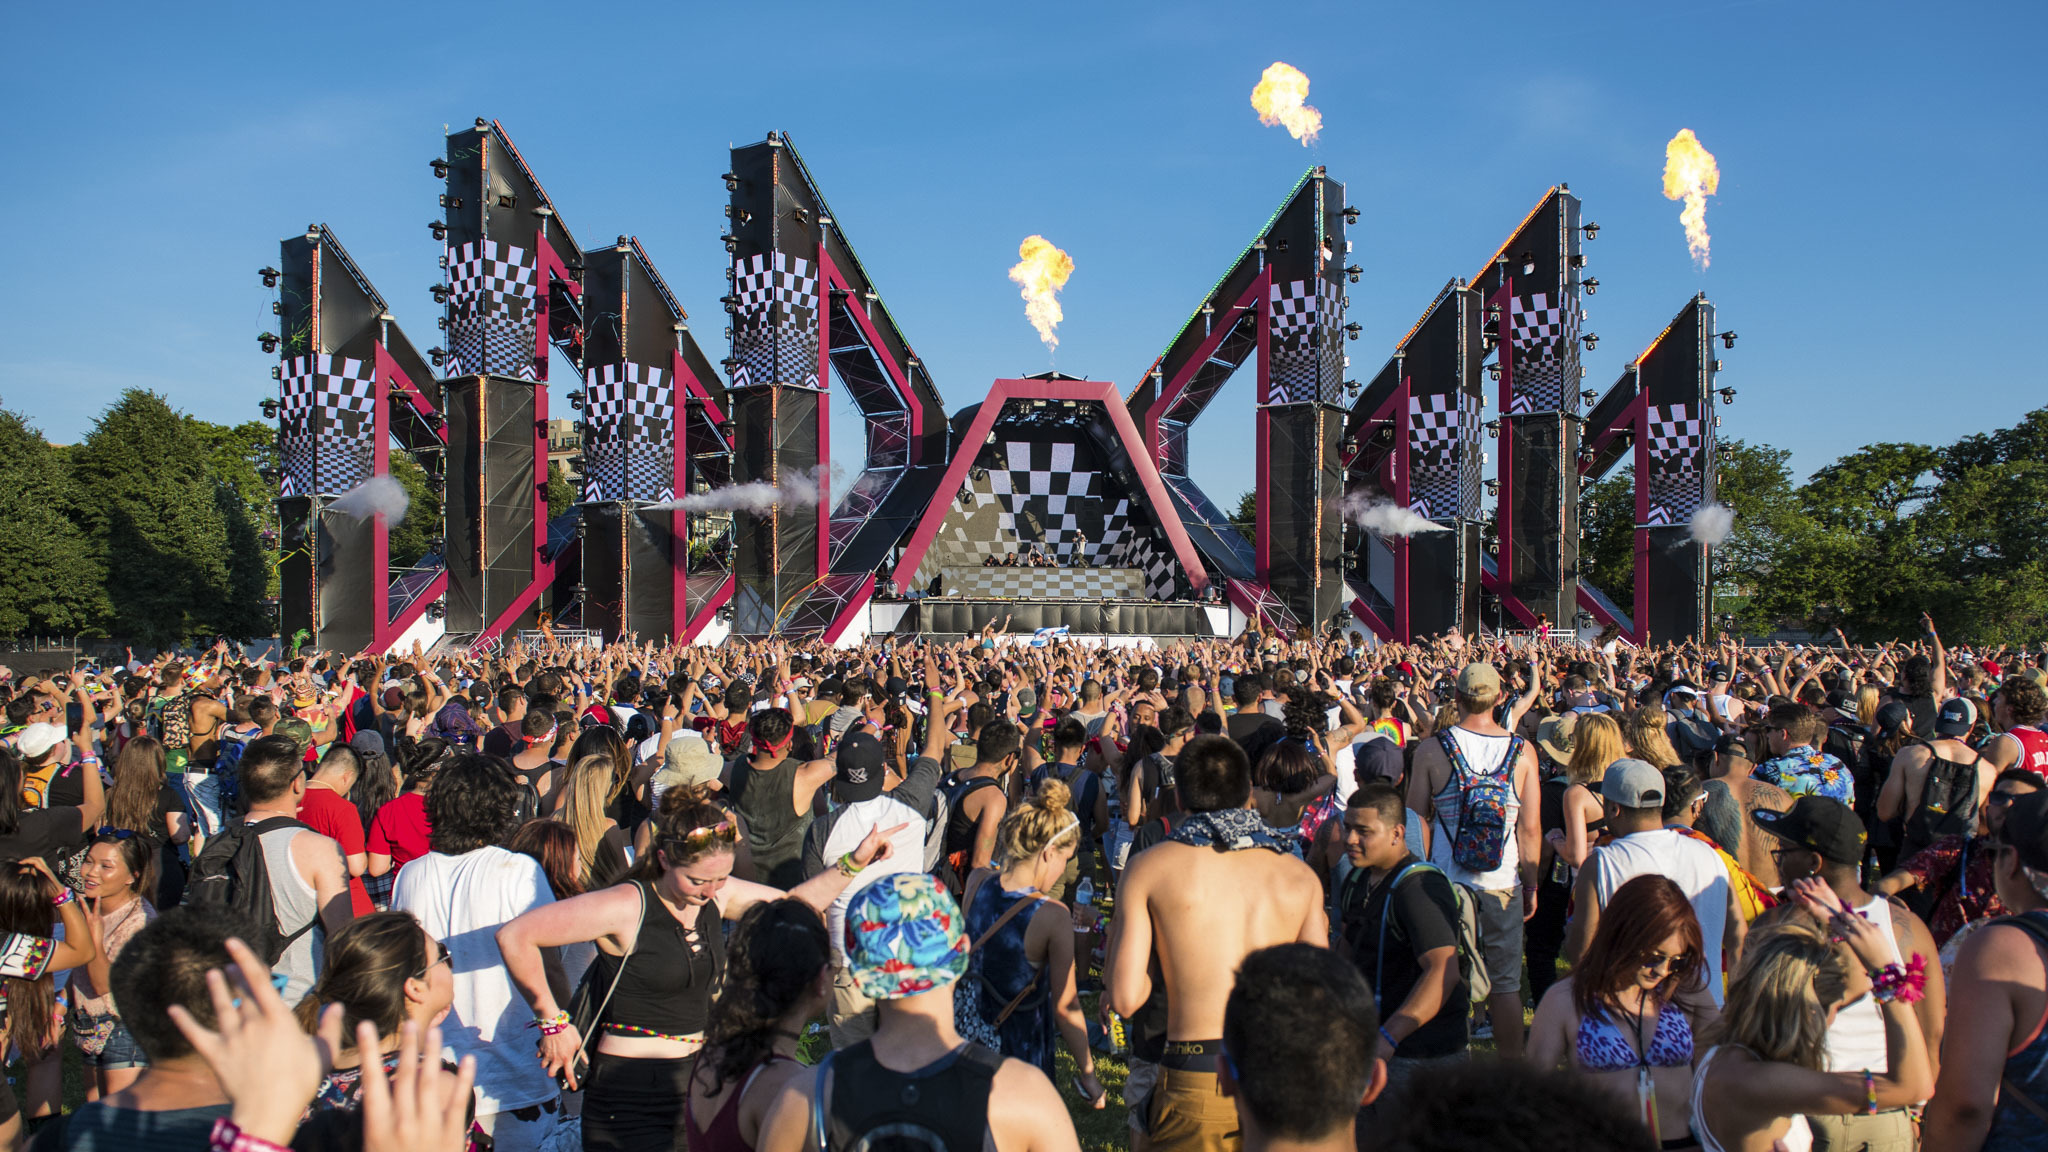 Spring Awakening announces its initial 2017 lineup